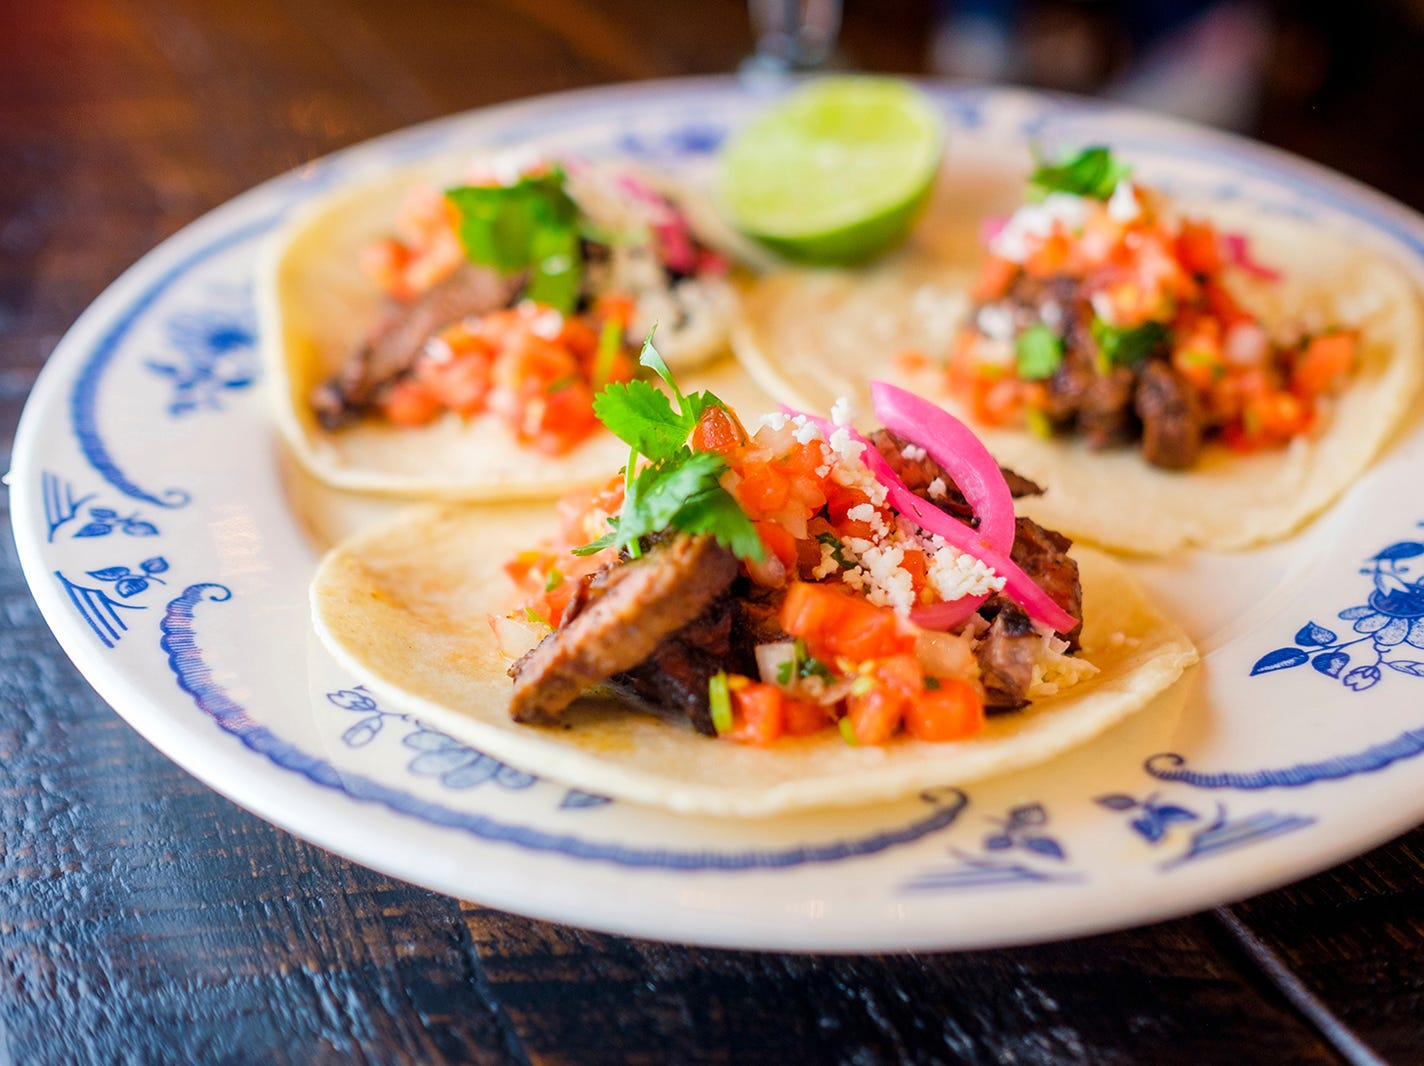 Carne asada tacos at Rocco's Tacos & Tequila Bar feature grilled marinated steak, pico de gallo, pickled red onions, cotija cheese and cilantro.